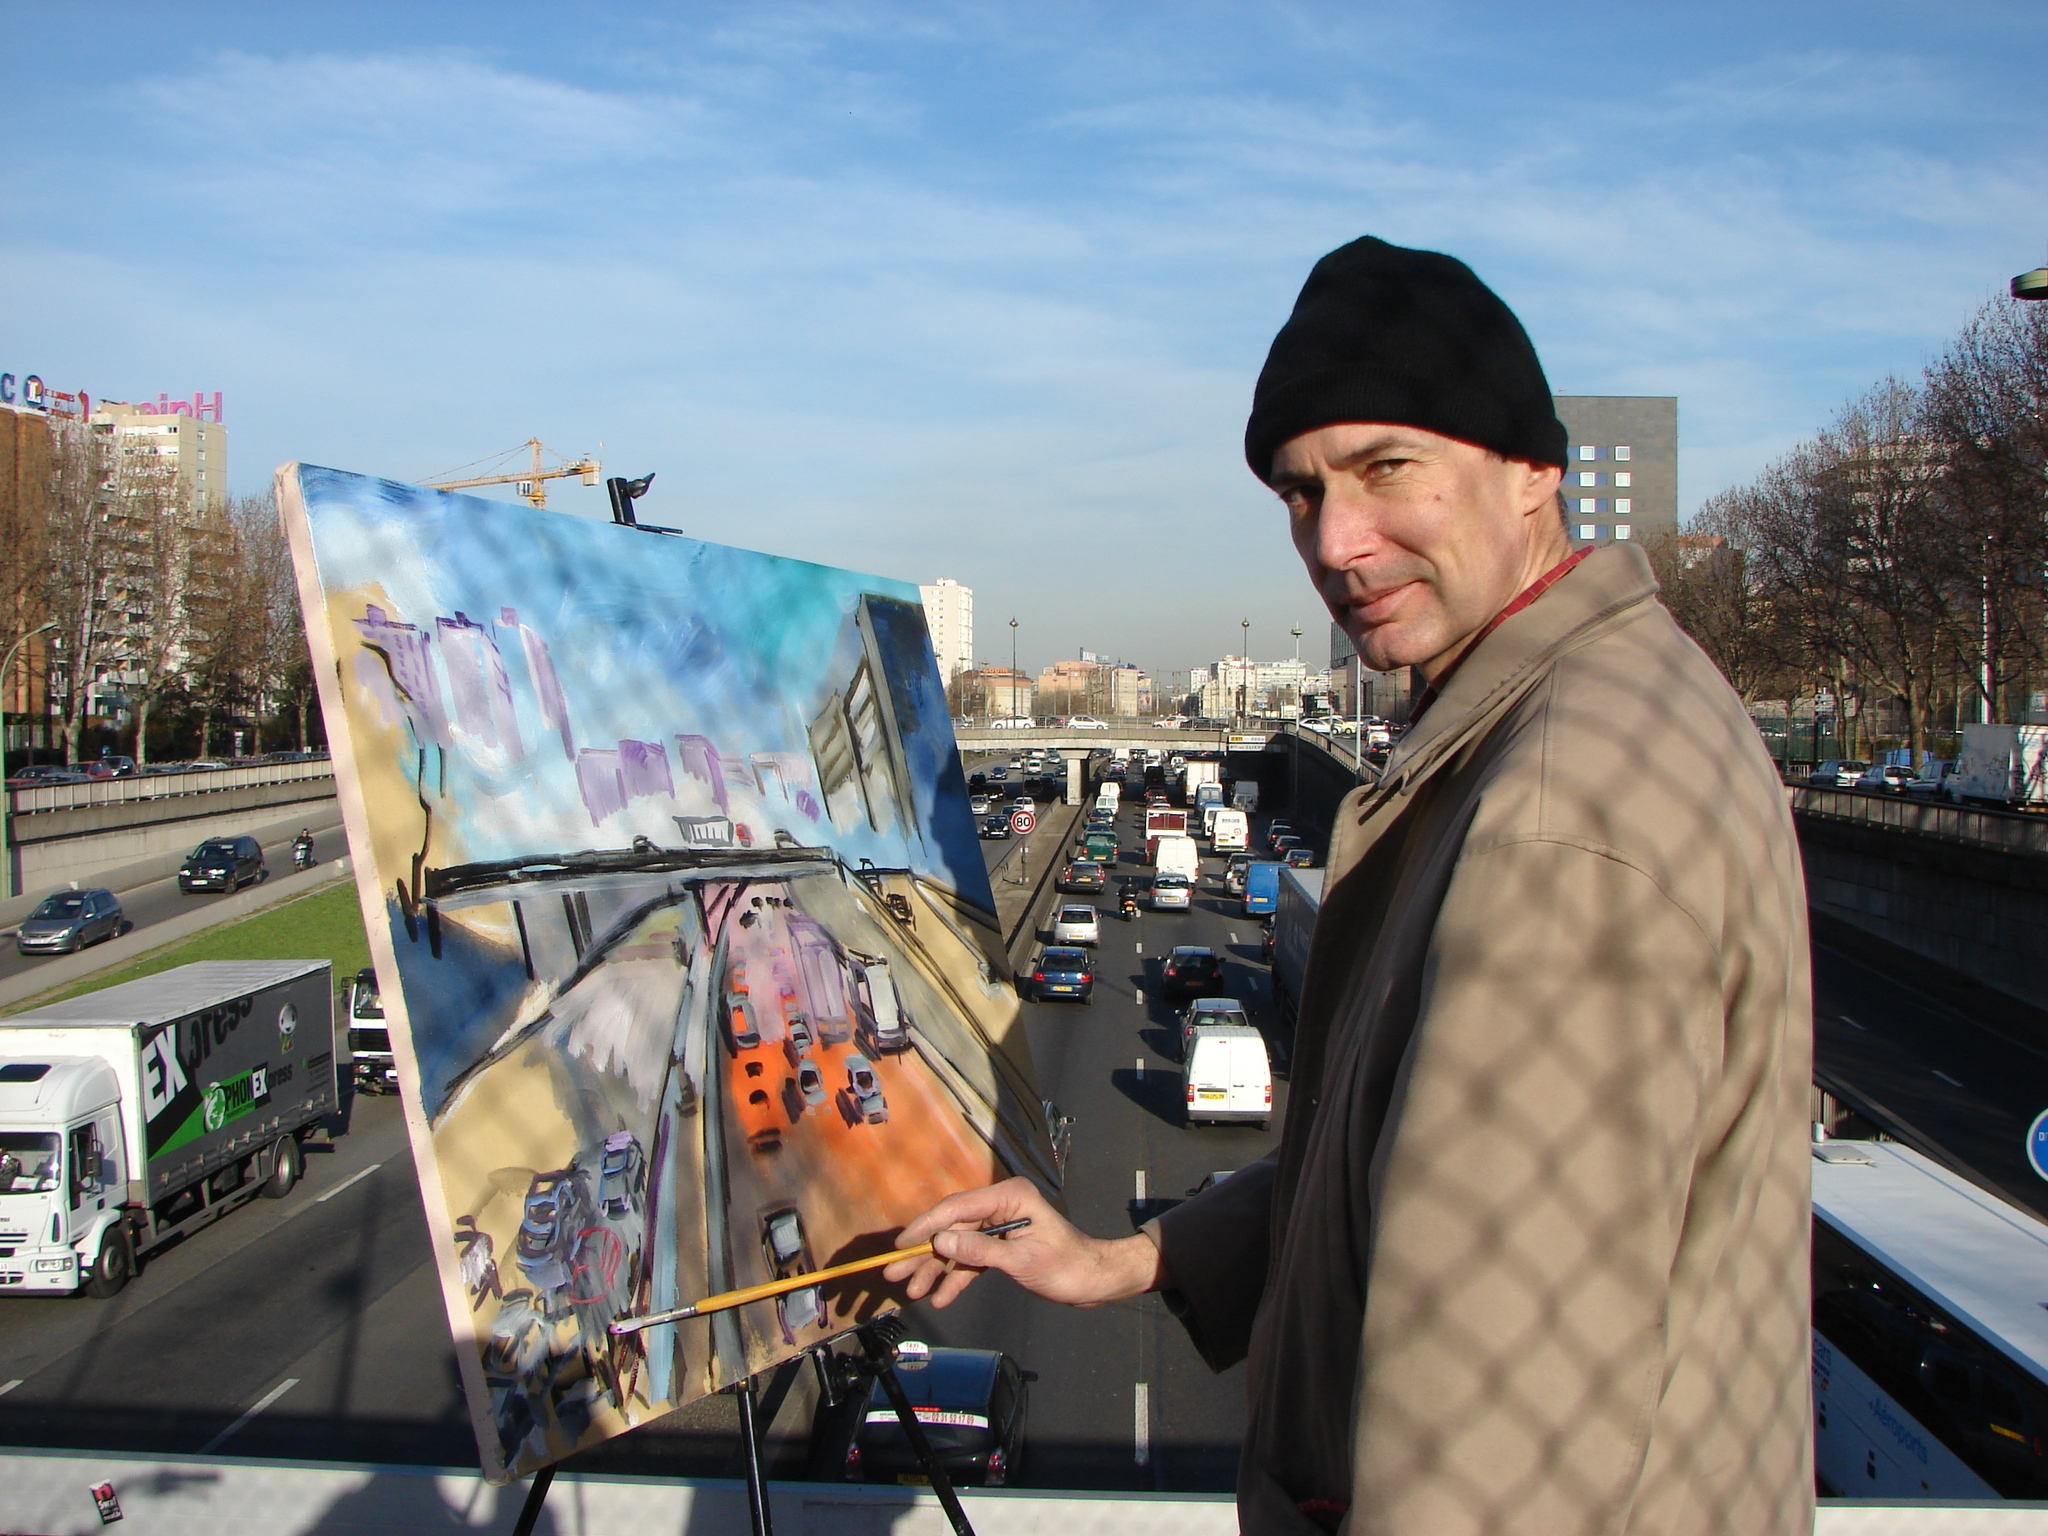 1000+ images about pintor / painter on Pinterest | The challenge ...